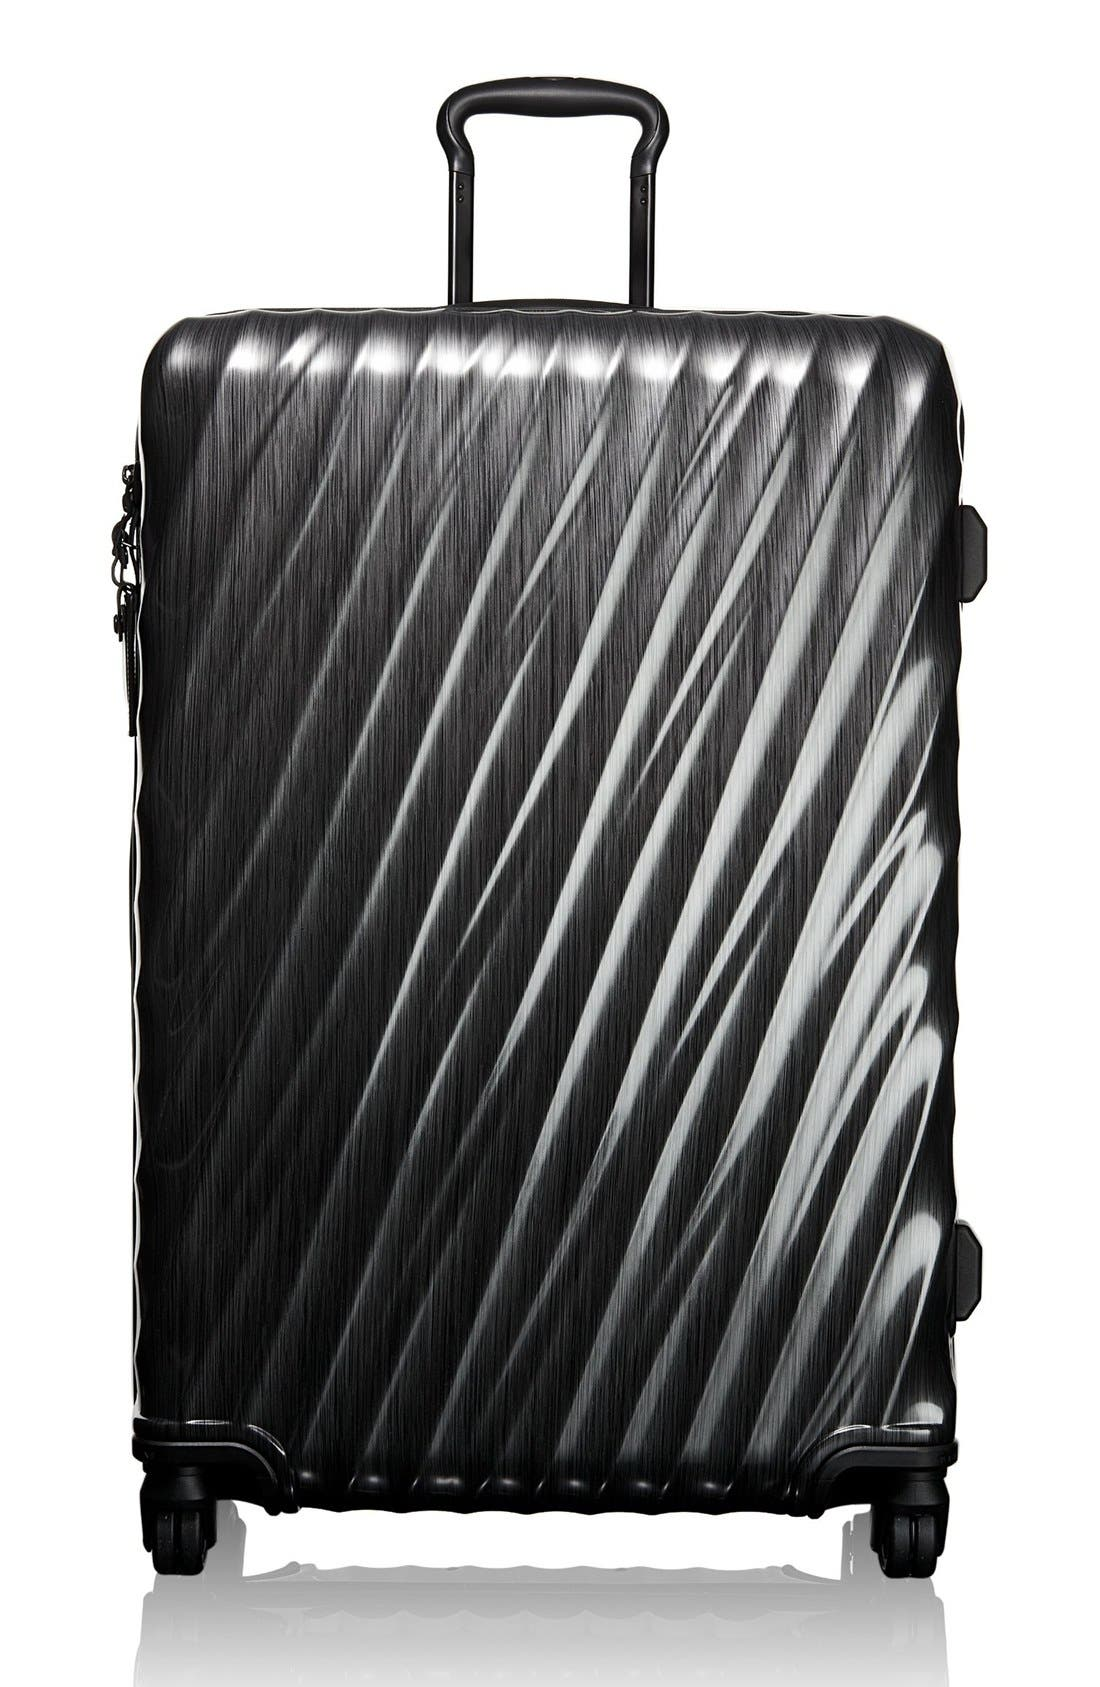 19 Degree 30 Inch Extended Trip Wheeled Packing Case,                         Main,                         color, 001